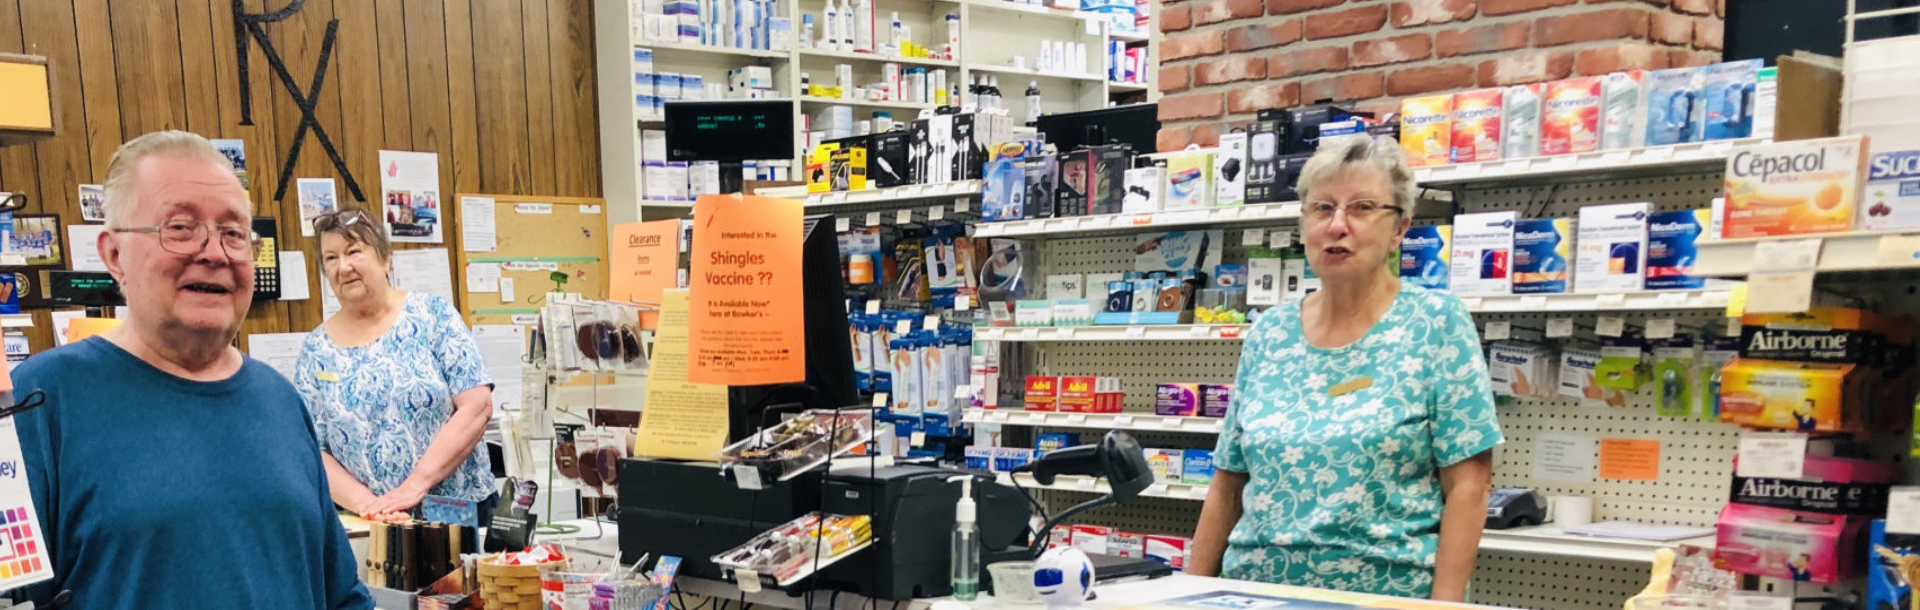 pharmacy personnel and customer posing for the camera